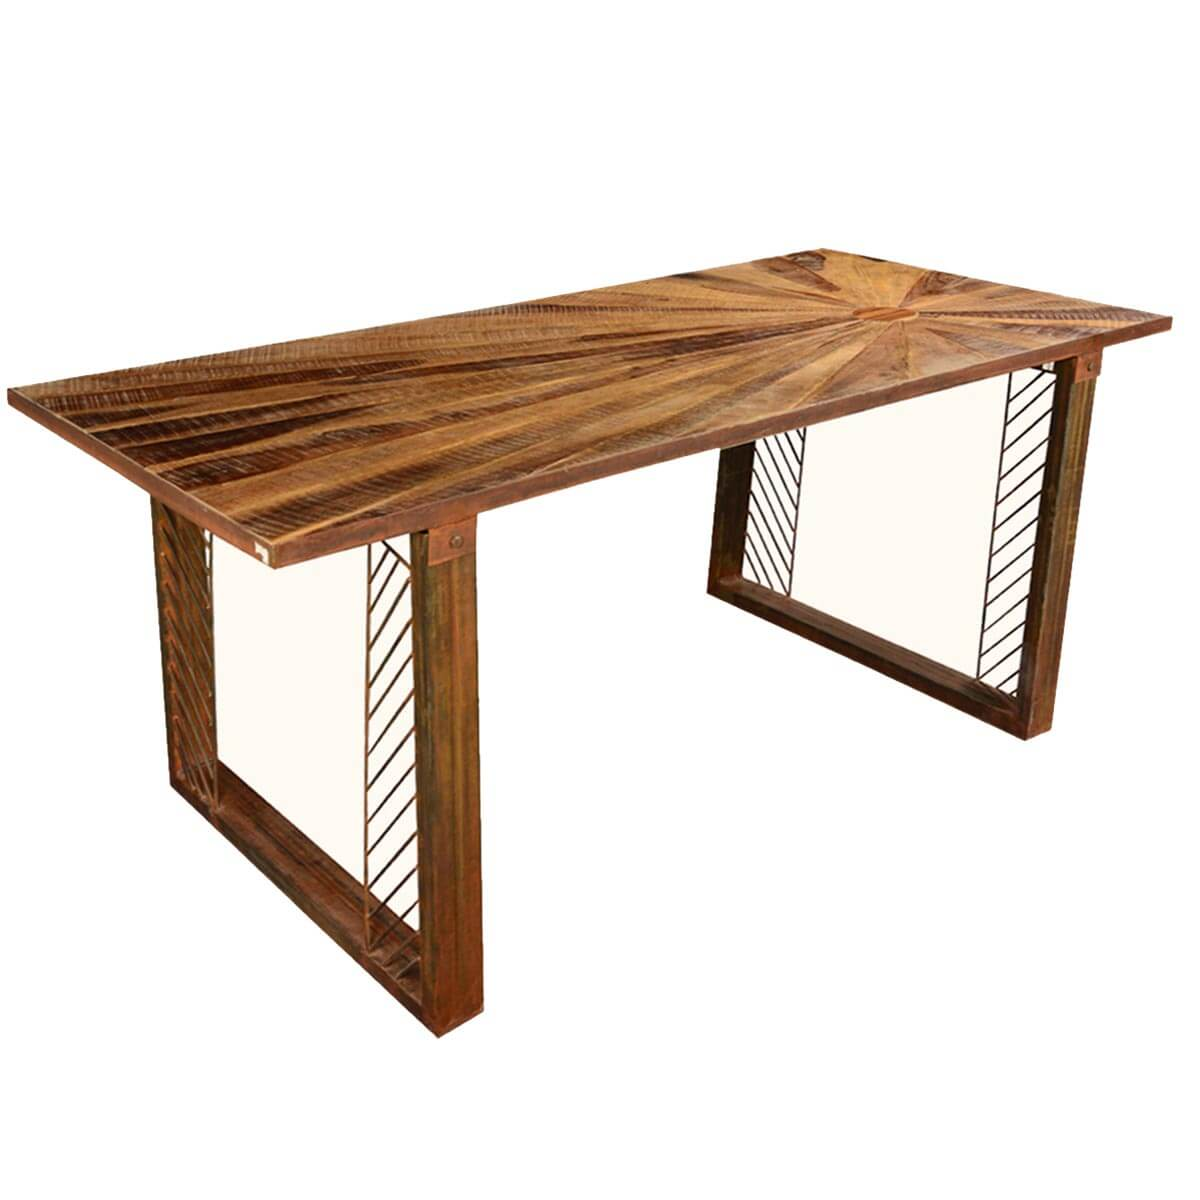 Contemporary Sunburst Reclaimed Wood Iron 71 Dining Table